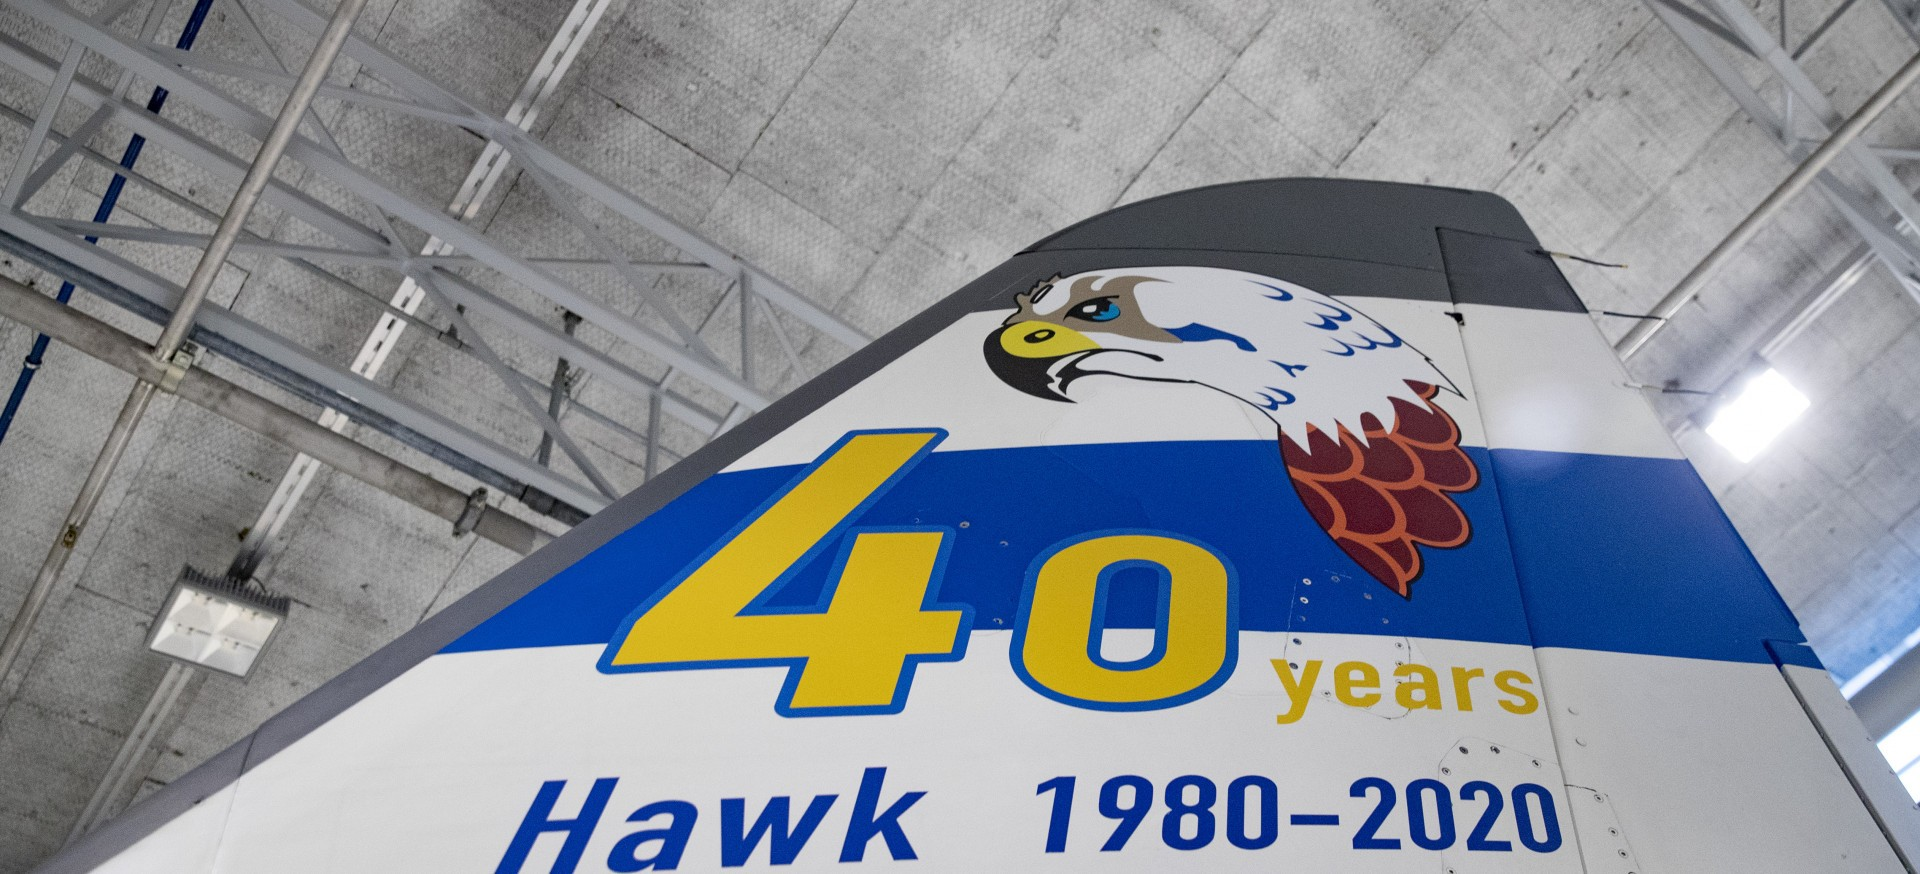 Hawk 40 years in Finland